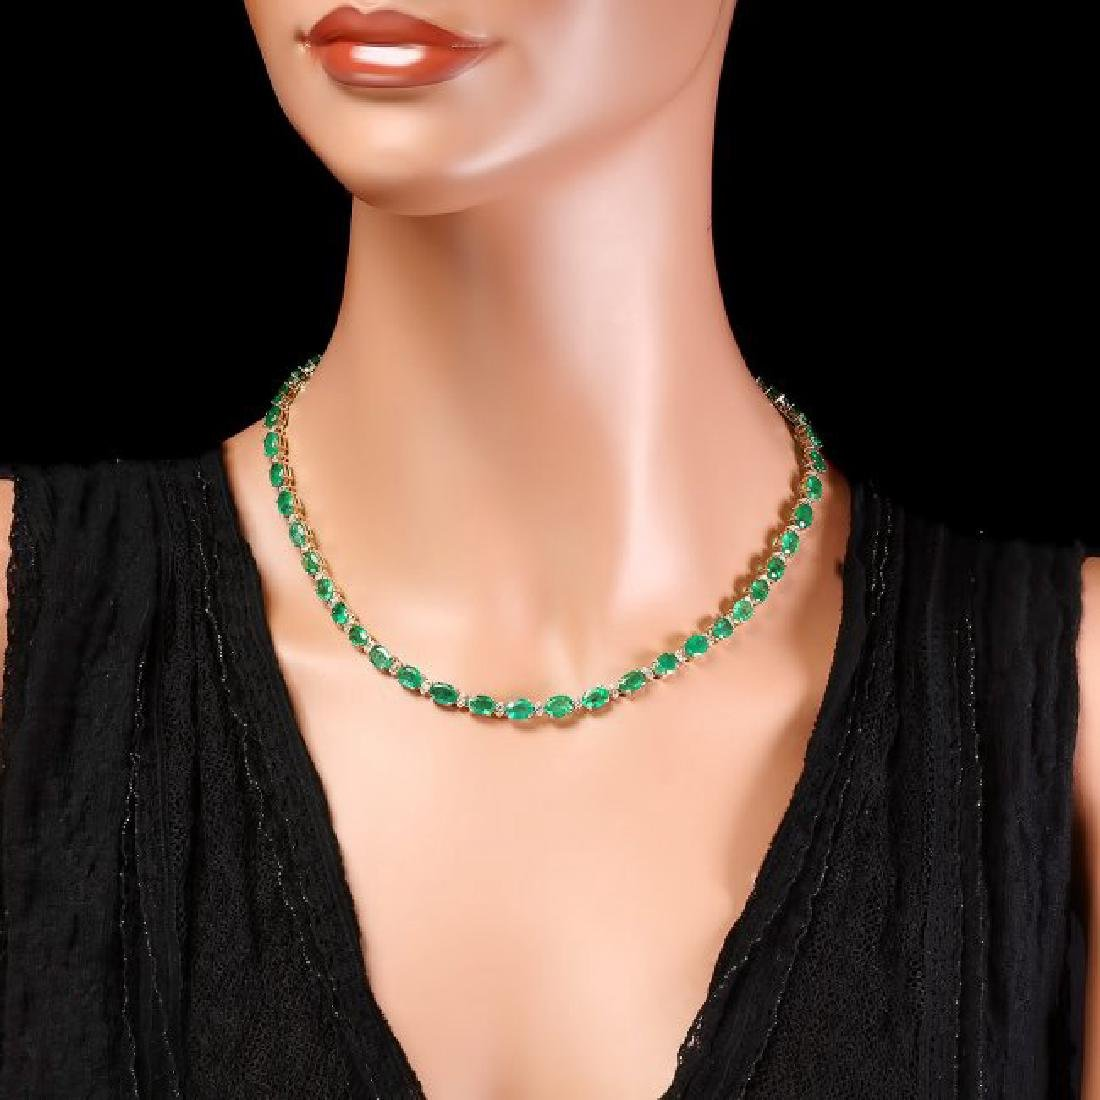 14k Gold 32ct Emerald 1.75ct Diamond Necklace - 4